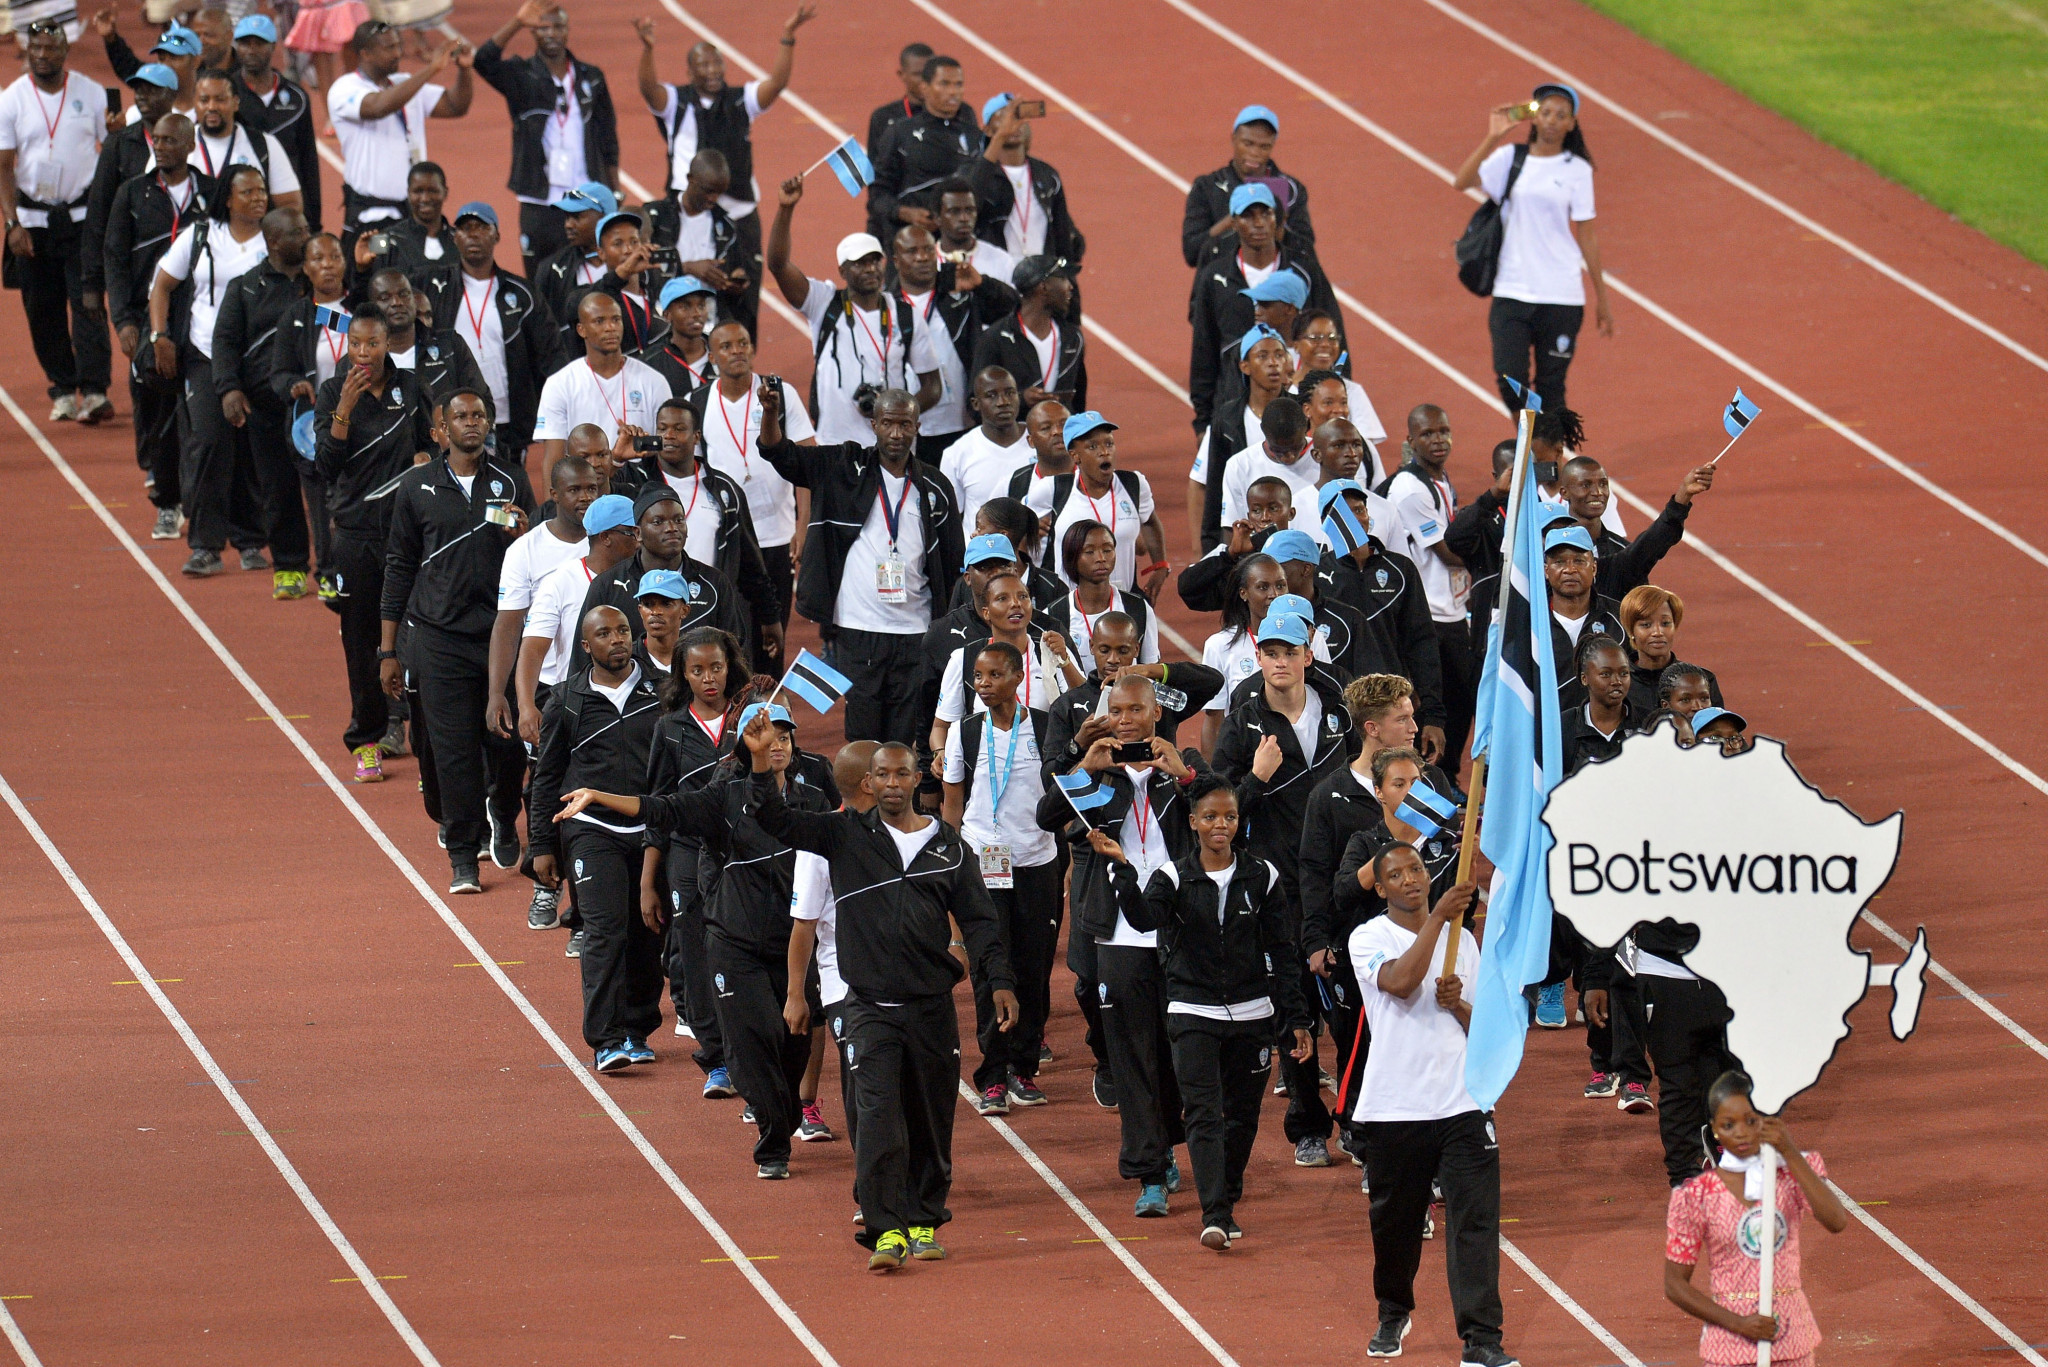 Botswana's Sports Minister backs BNOC initiative to get people running for Olympic Day